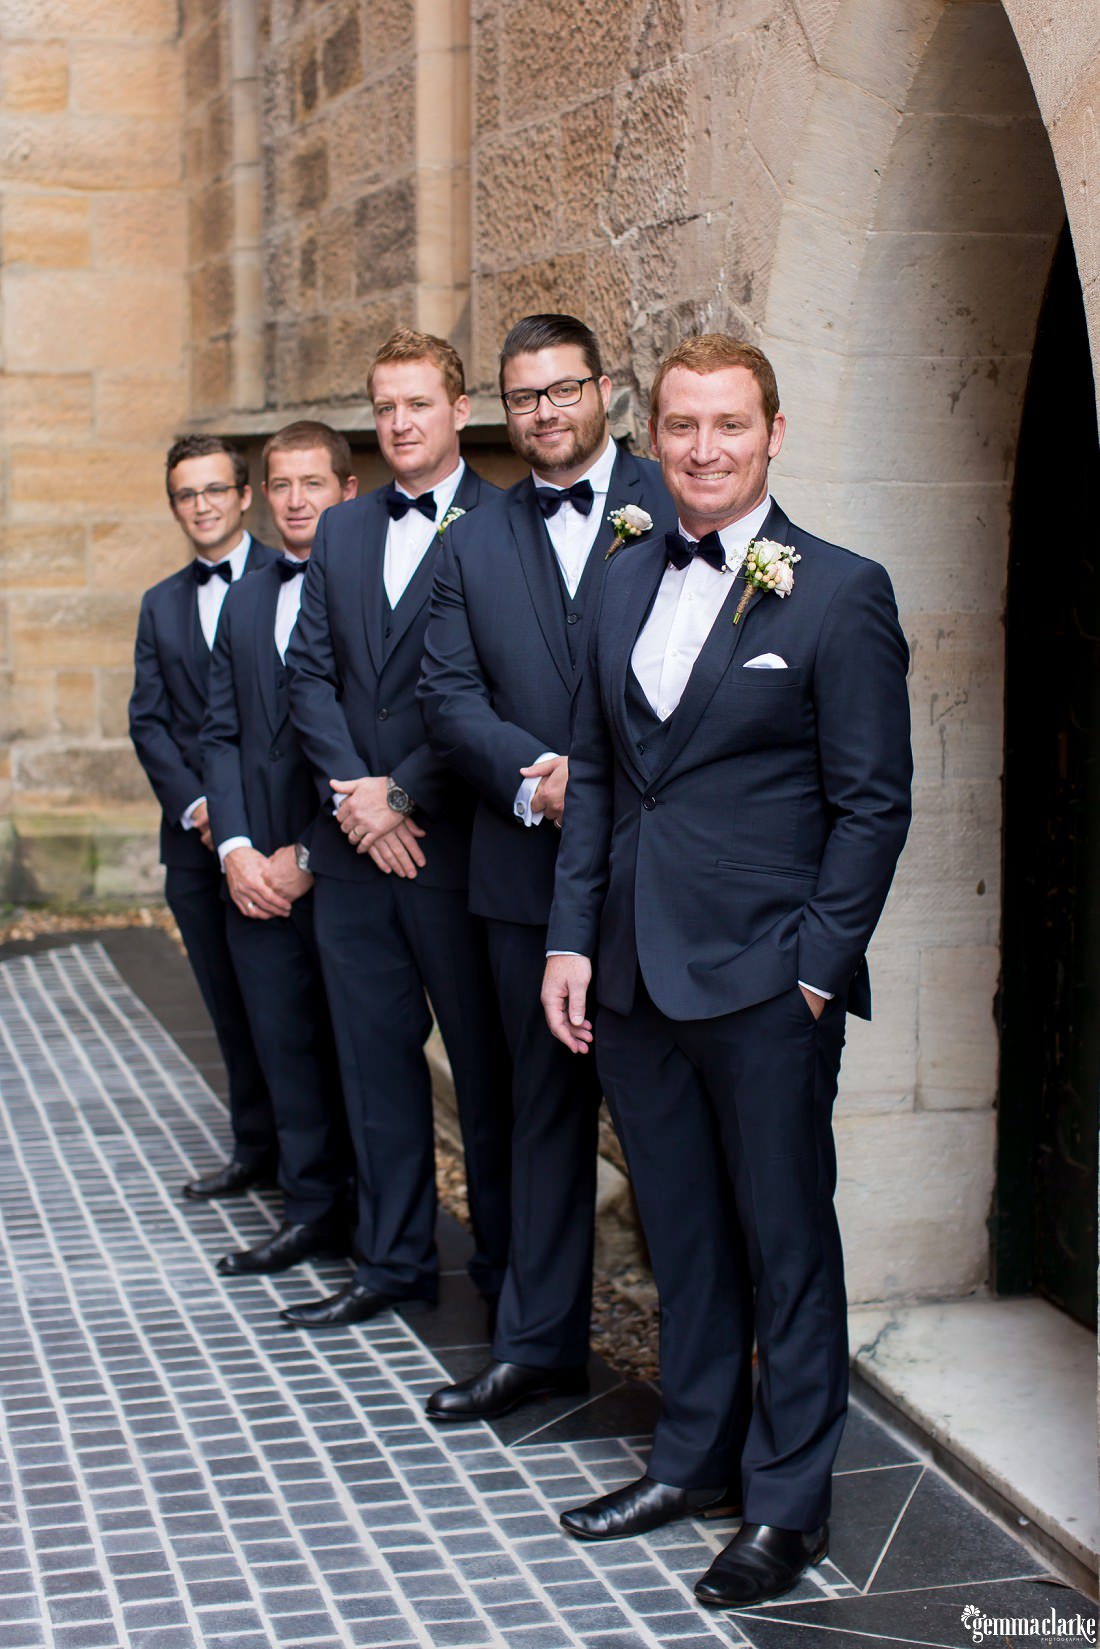 A groom and four groomsmen standing outside a church